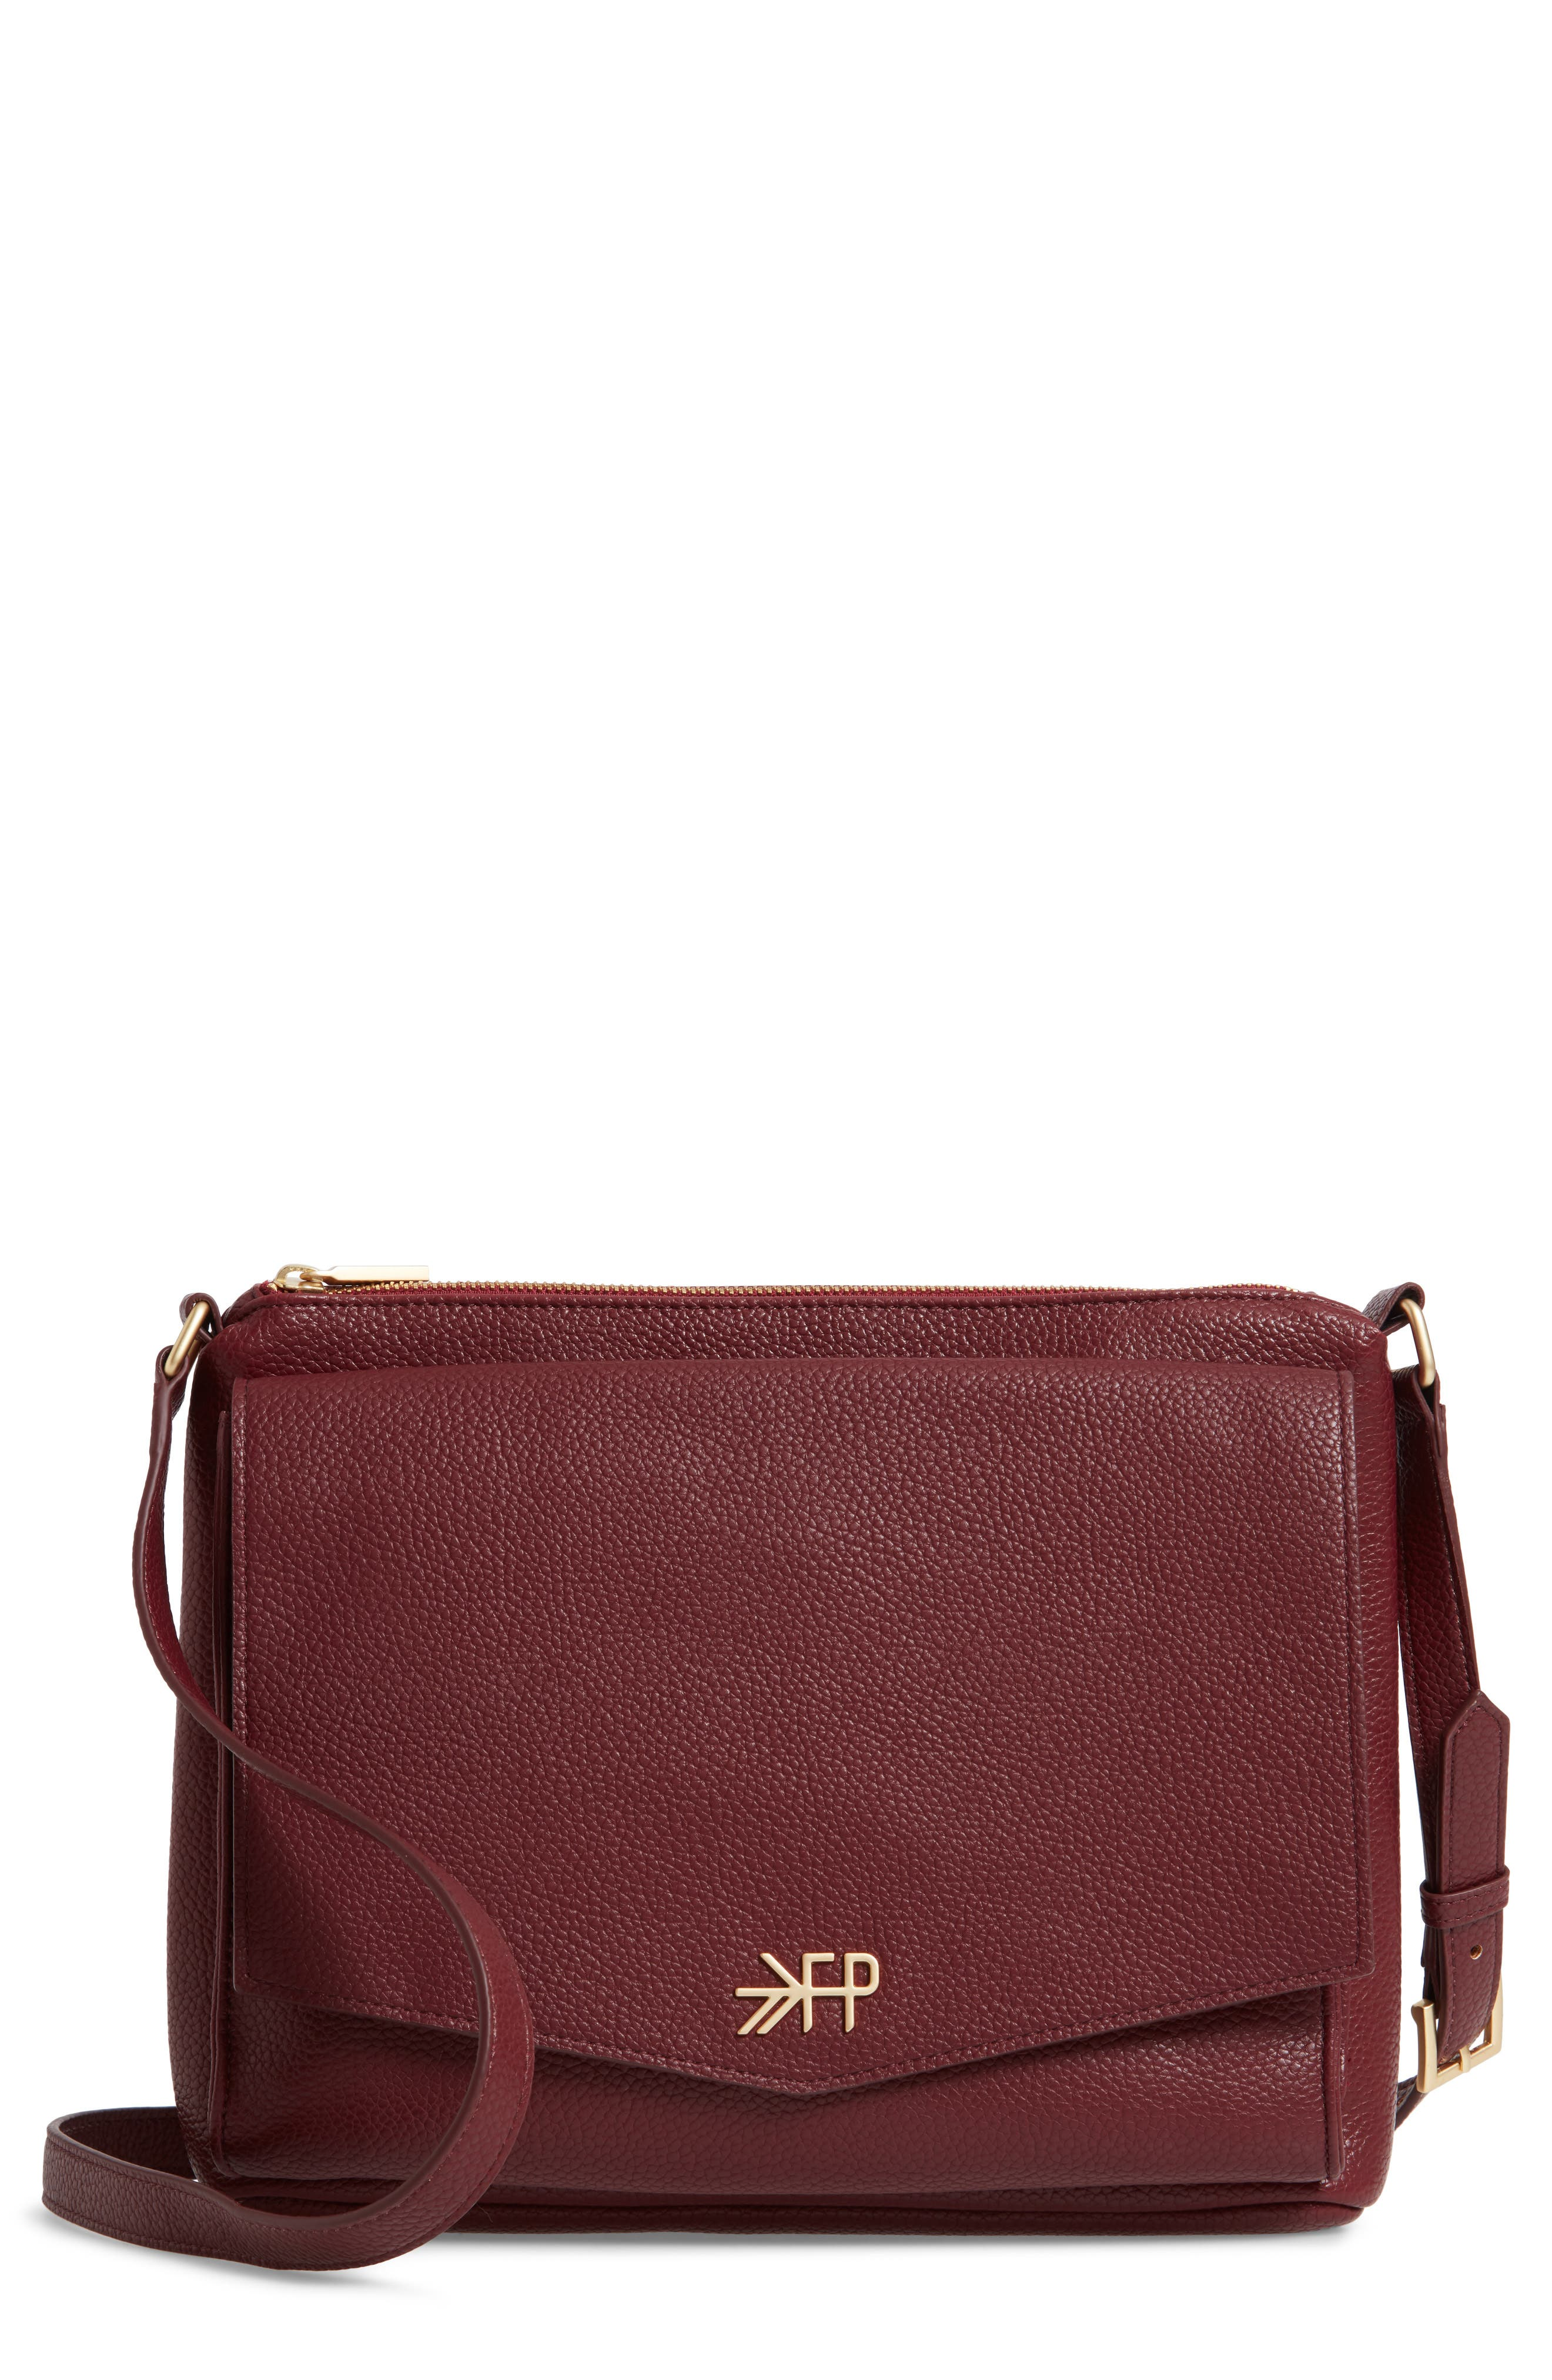 FRESHLY PICKED Classic Faux Leather Crossbody Diaper Bag, Main, color, BURGUNDY